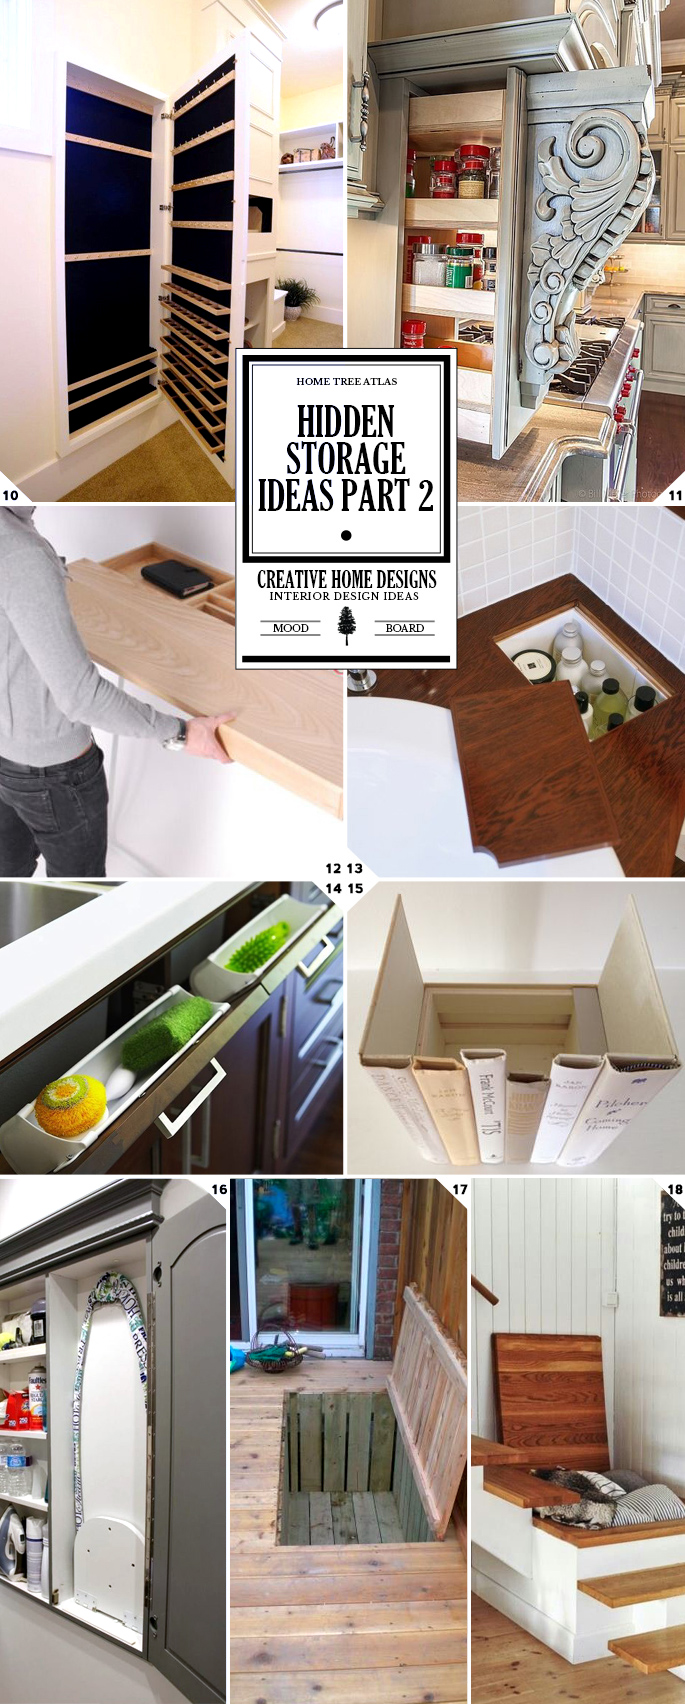 Hidden storage ideas part 2